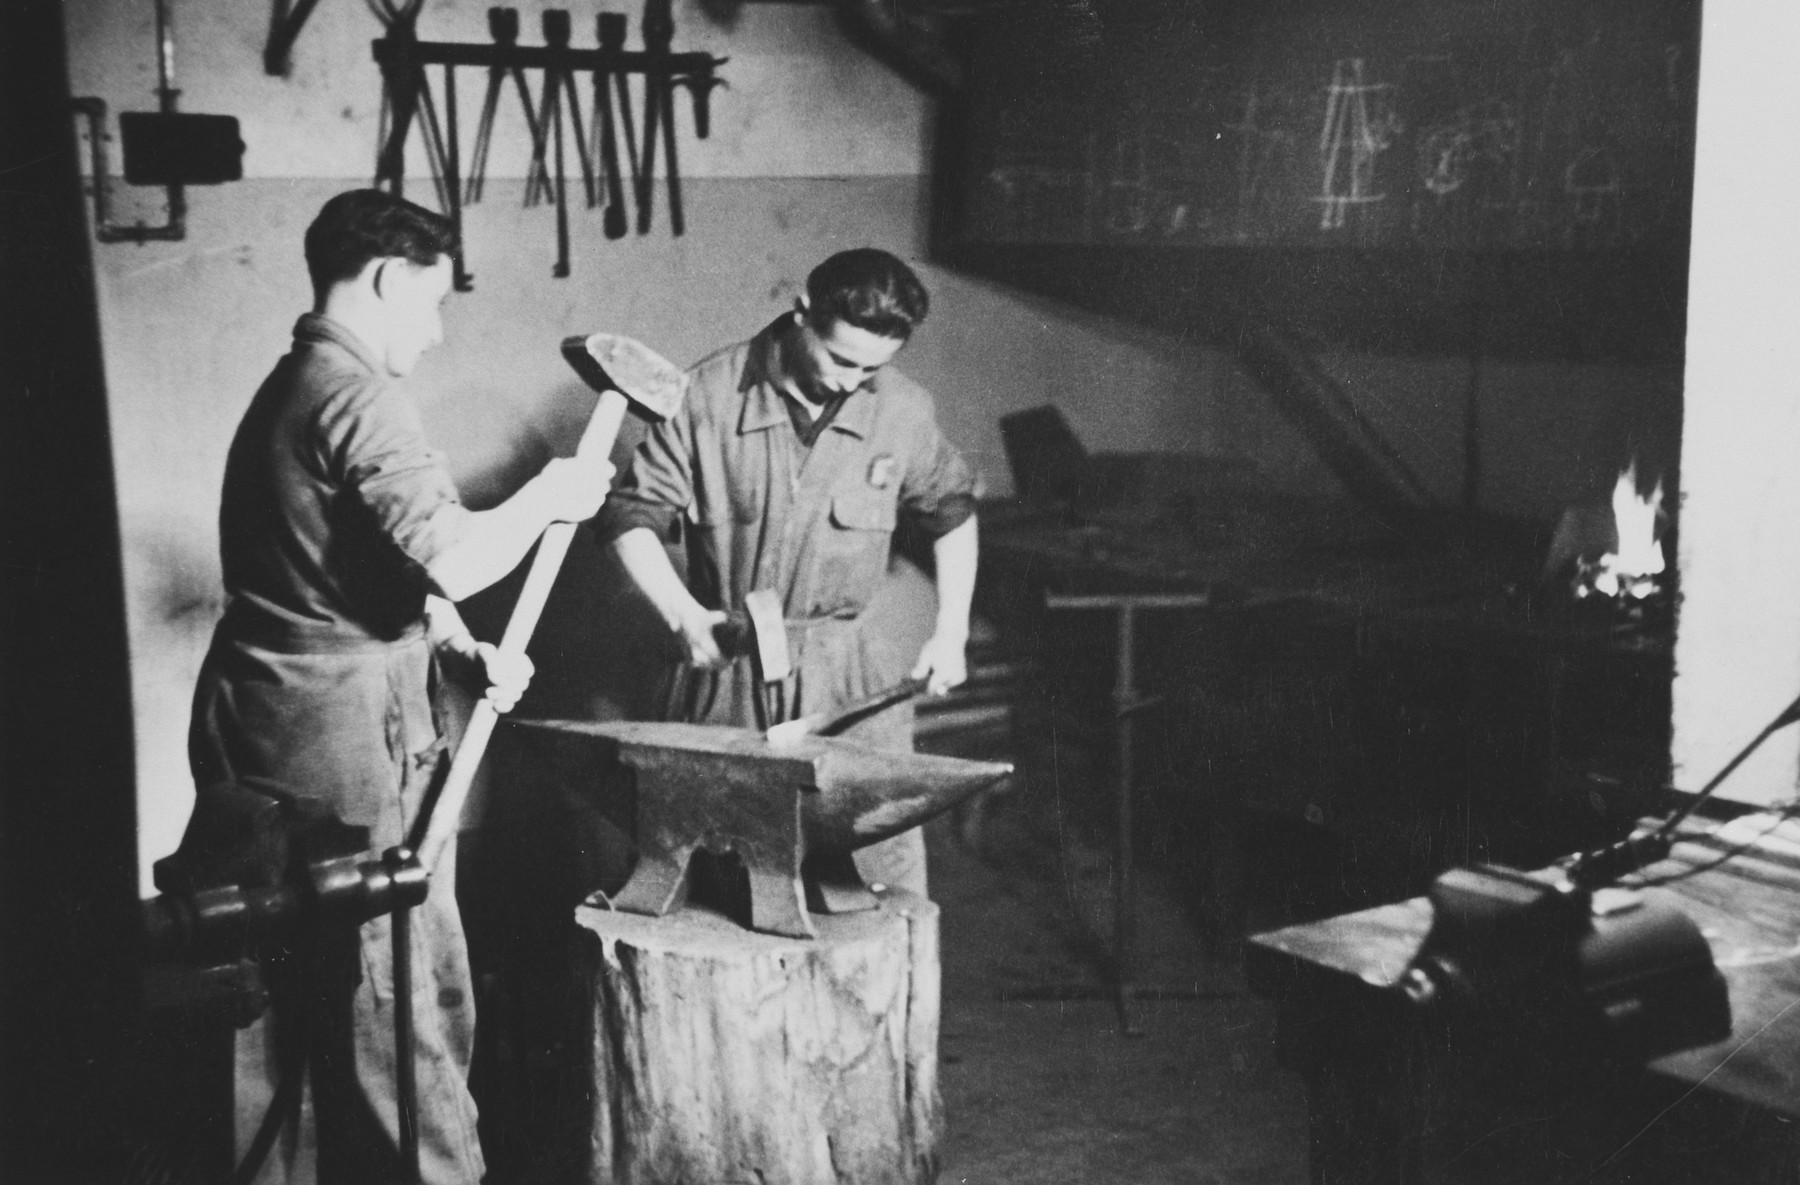 Two young Jewish survivors work in a blacksmith shop in a children's home in Switzerland.